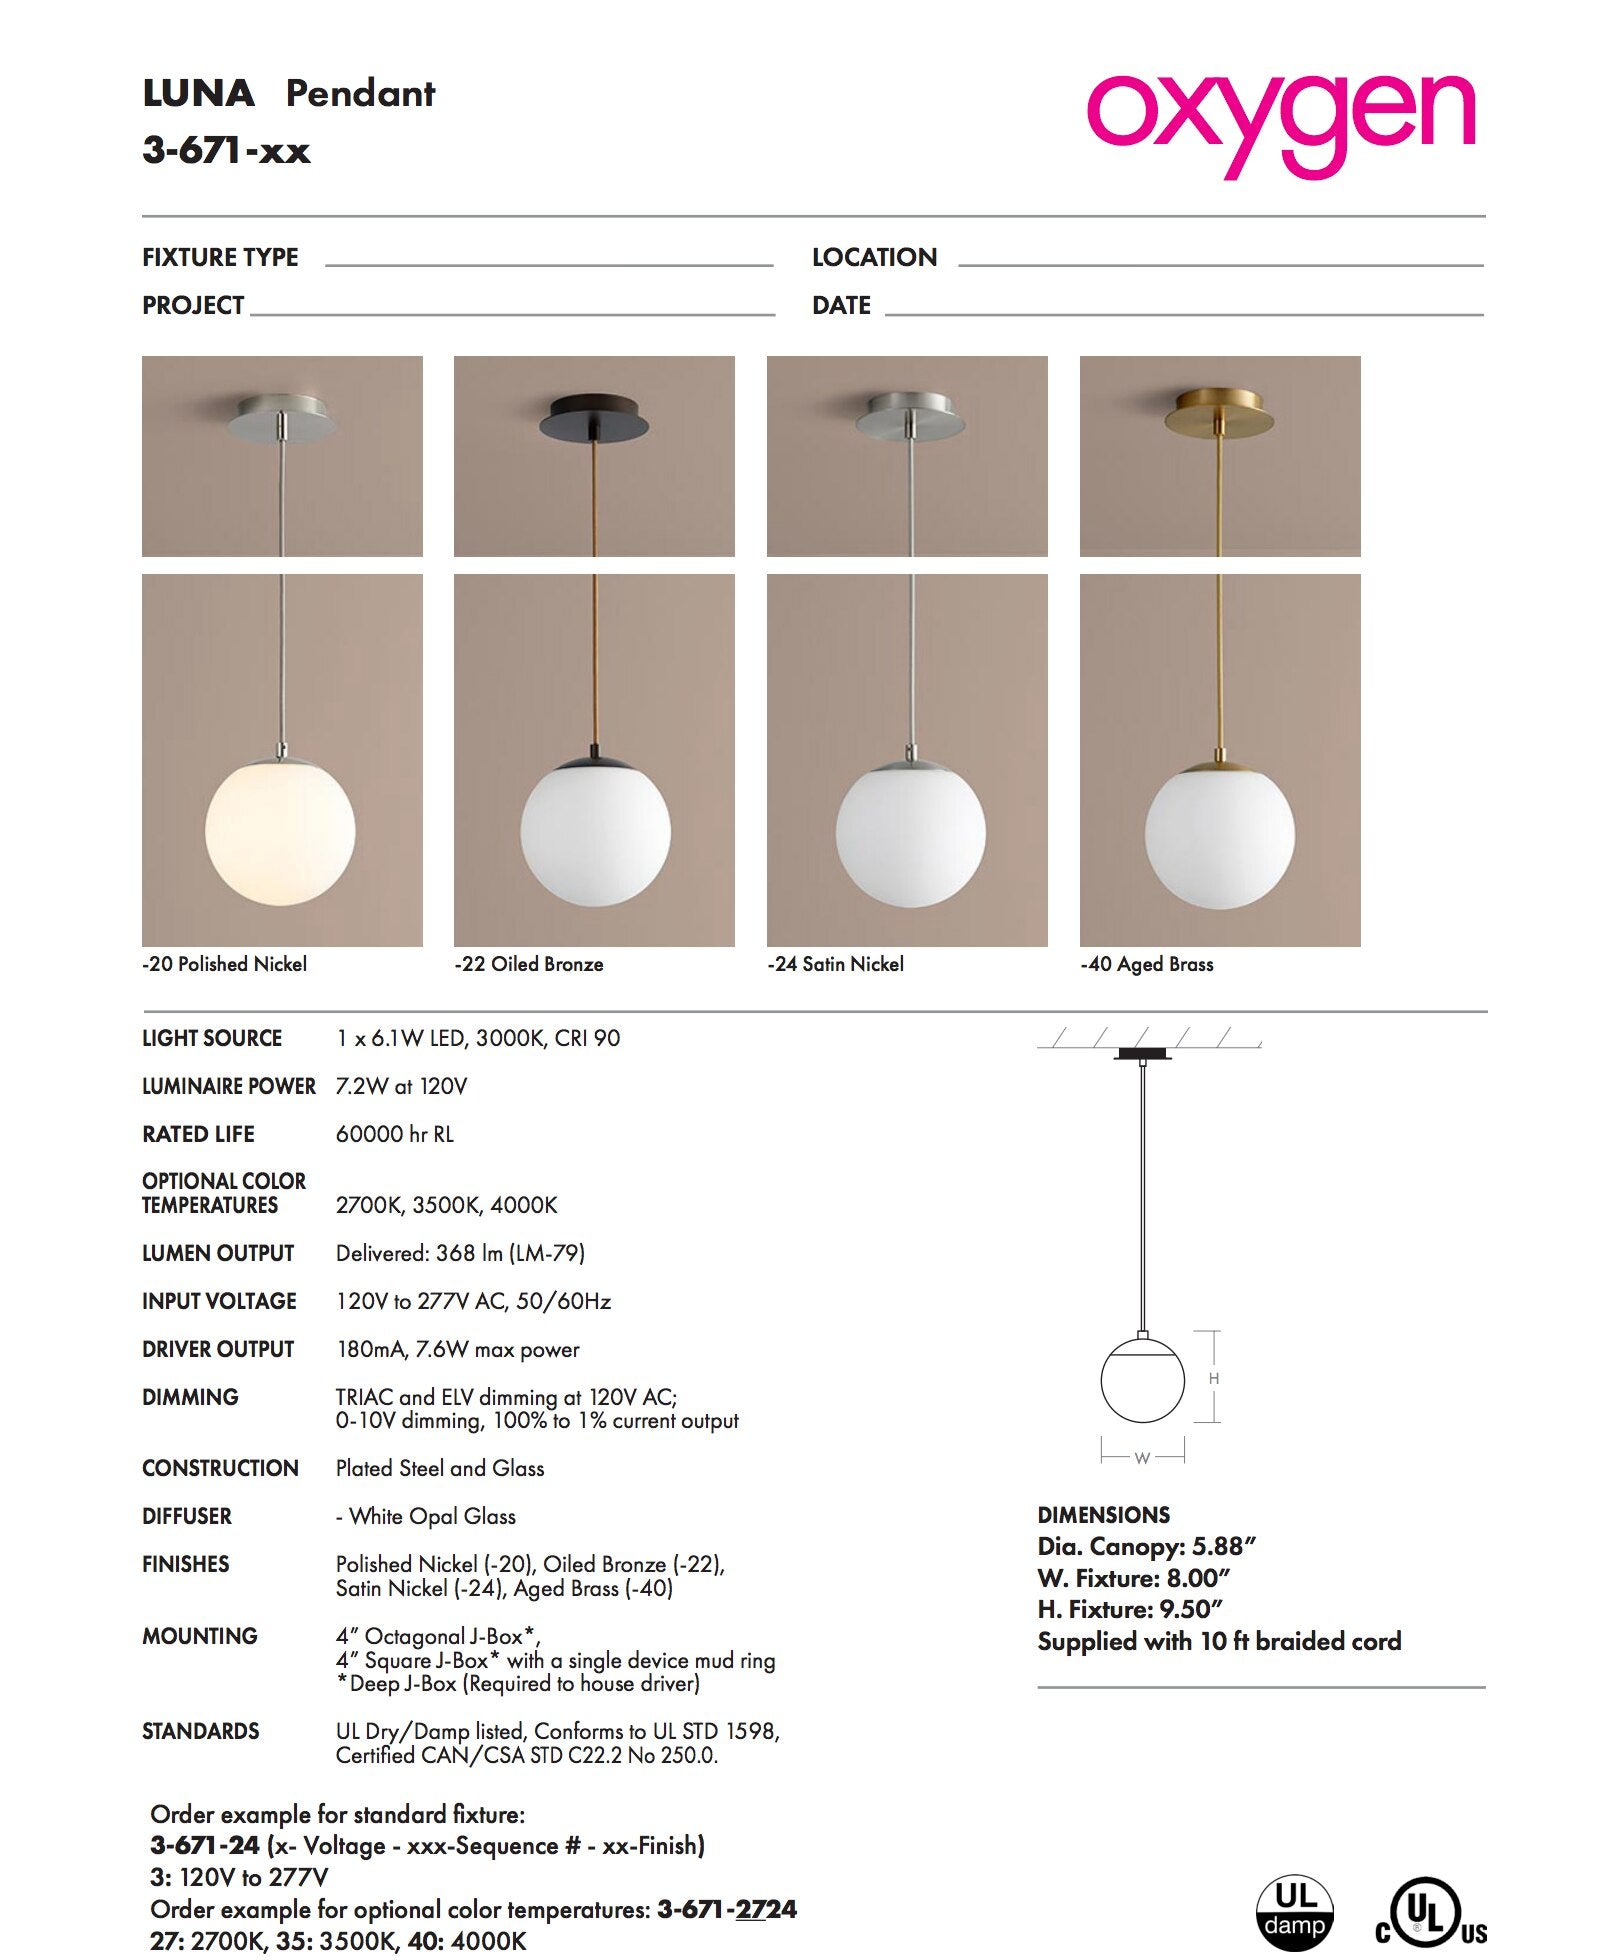 Oxygen Lighting 3-671-24 Luna Pendant Light, Satin Nickel finish with White Opal glass, Supplied with 10 ft braided cord